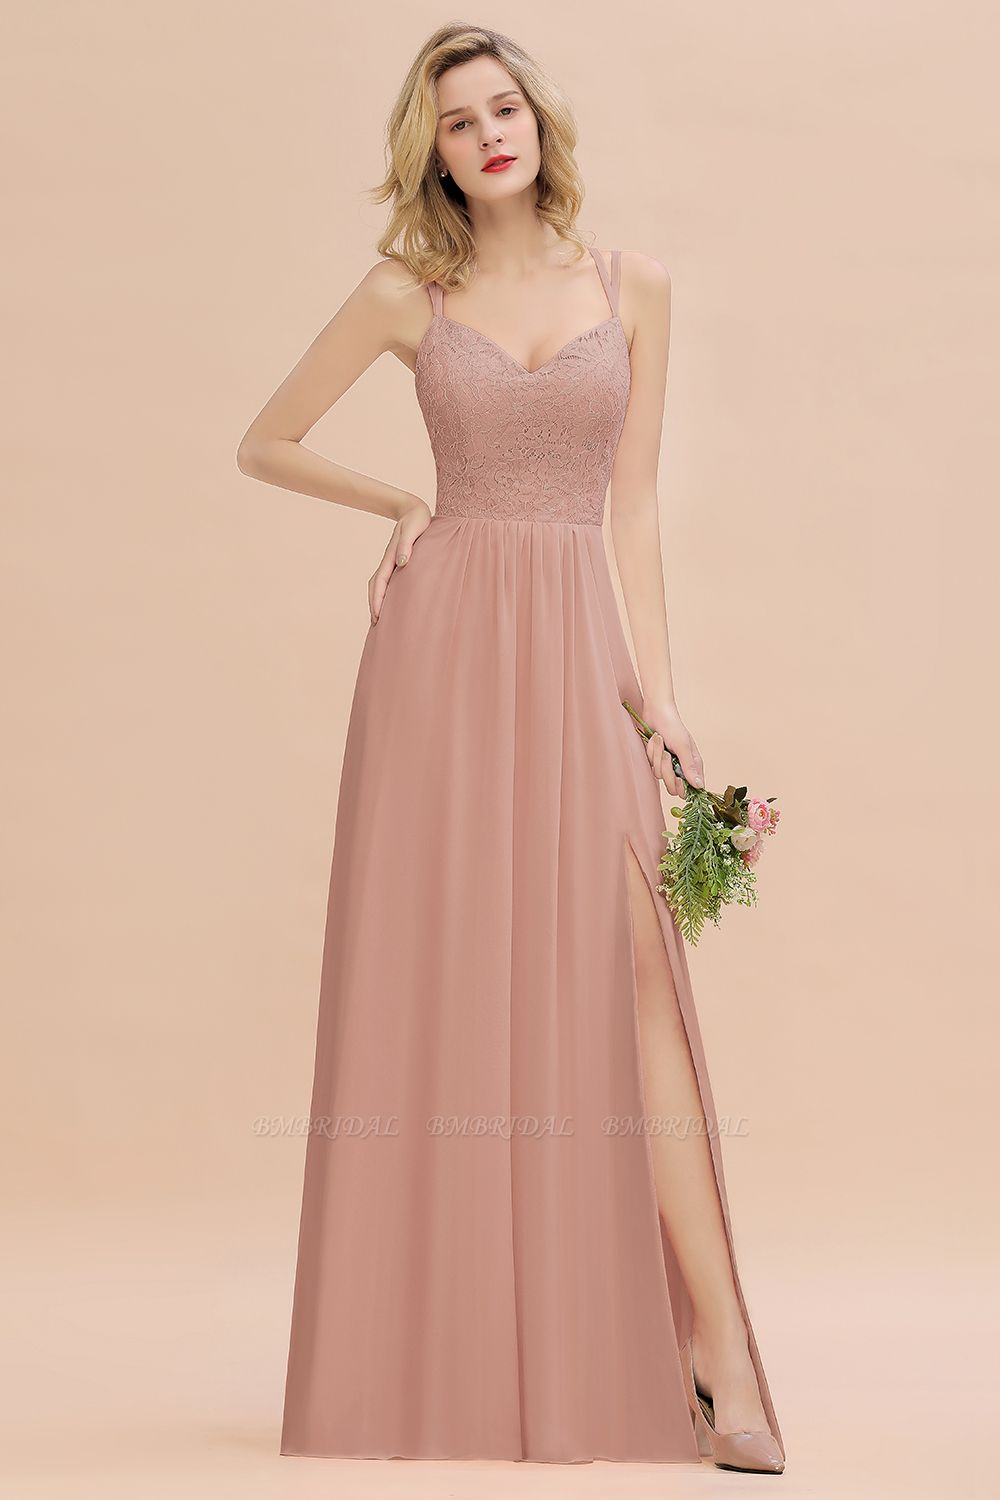 BMbridal Sexy Spaghetti-Straps Coral Lace Bridesmaid Dresses with Slit